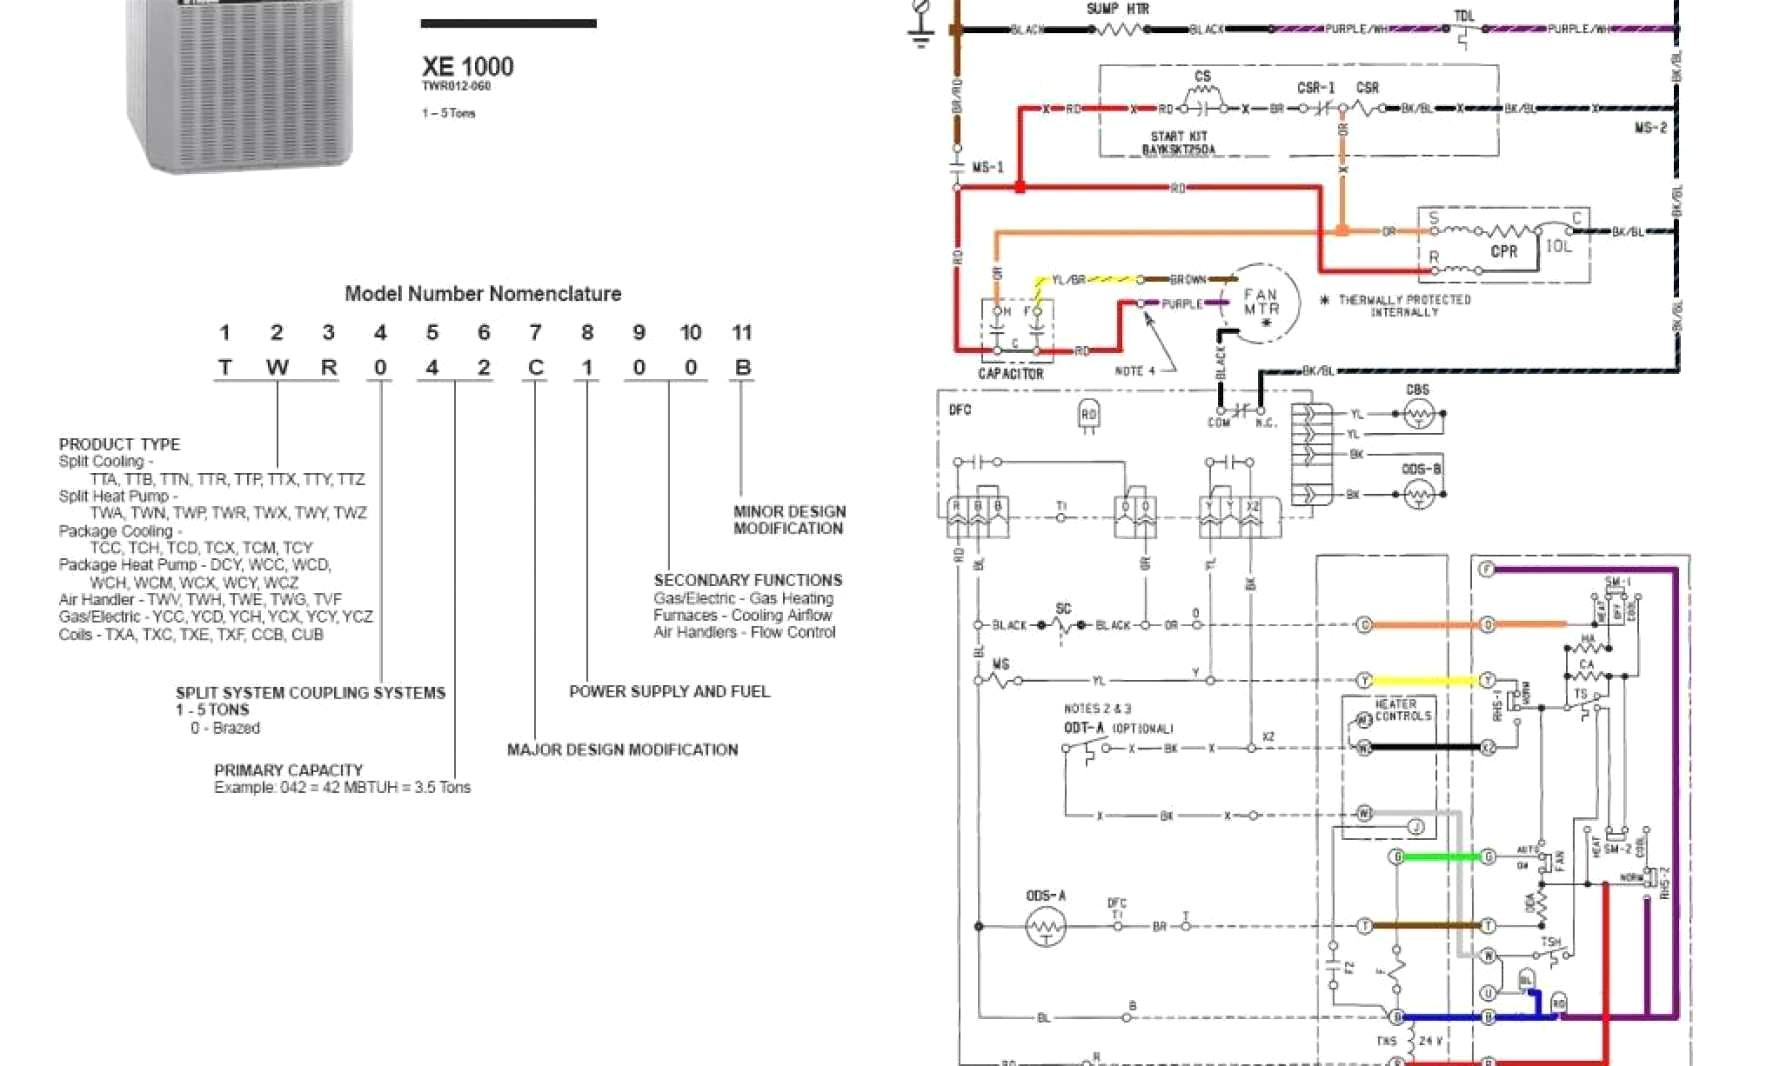 trane furnace wiring diagram Collection-Trane Air Conditioner Wiring Diagram Noticeable Furnace With 18-l